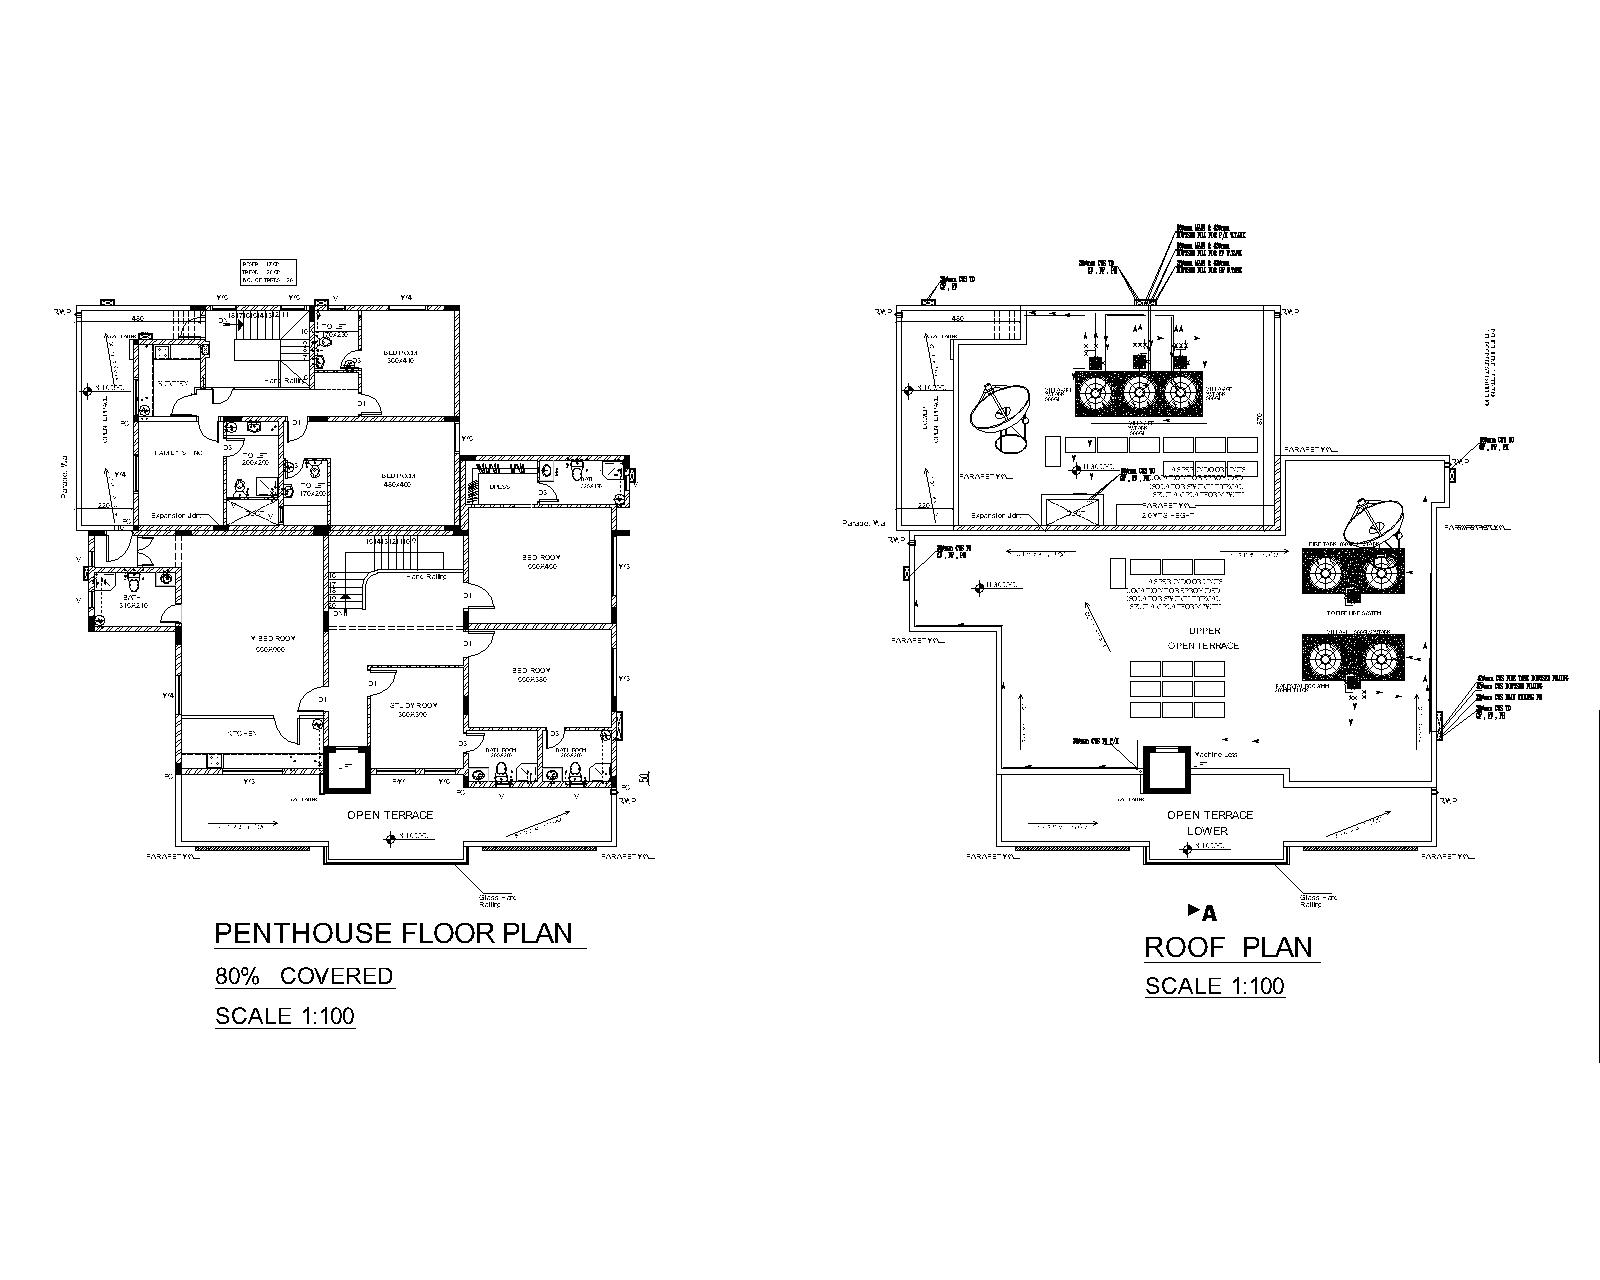 Design Plumbing Drawings Water Supply and Drainage Layout